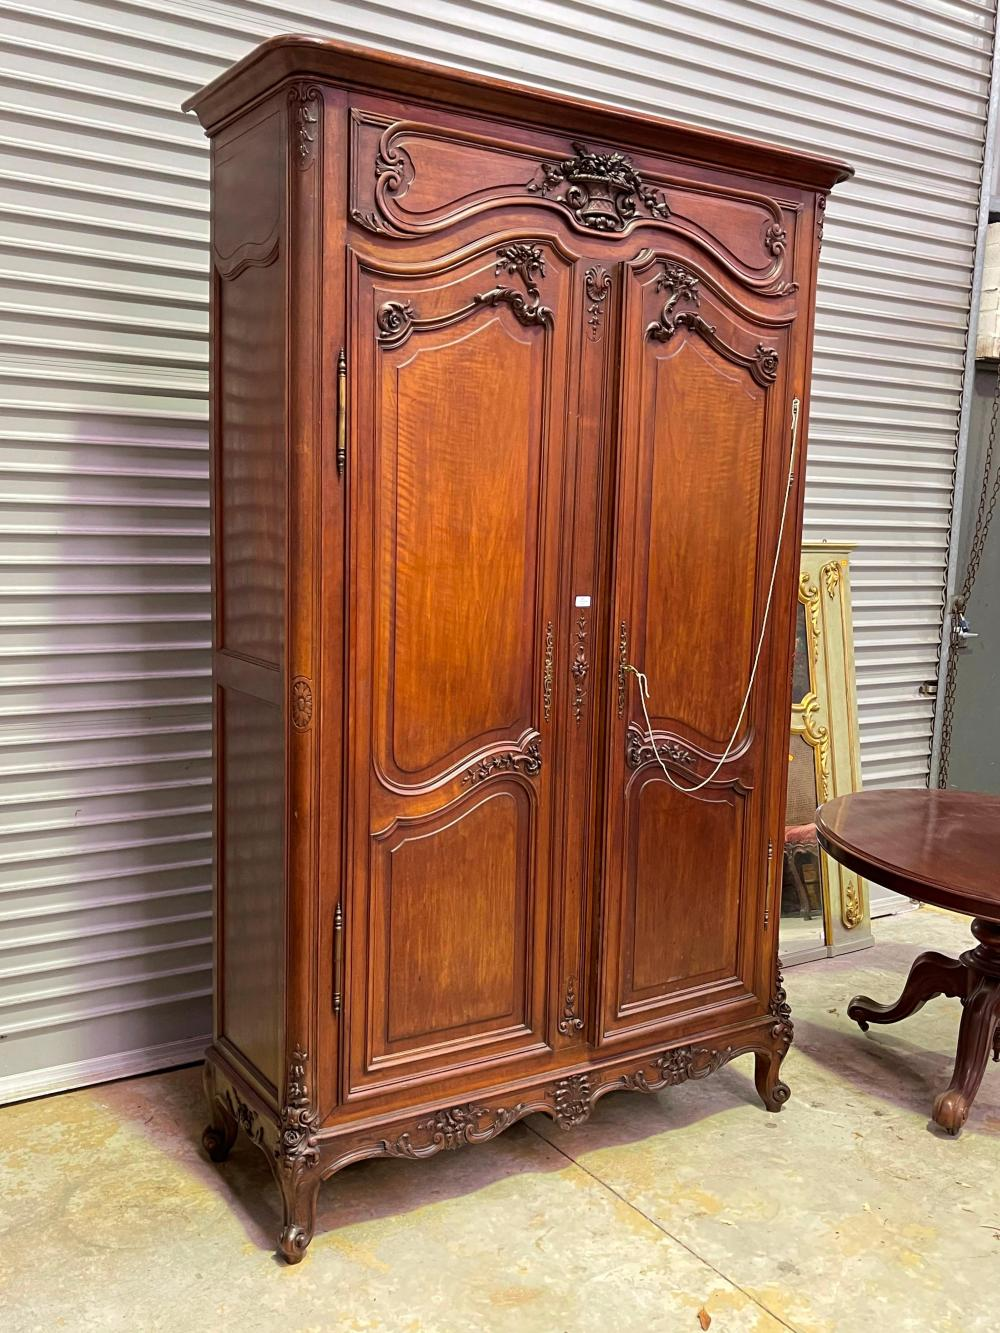 Antique French Louis XV style two door armoire of unique design, tall & thinner than usual, approx 243cm H x 150cm W x 54cm D